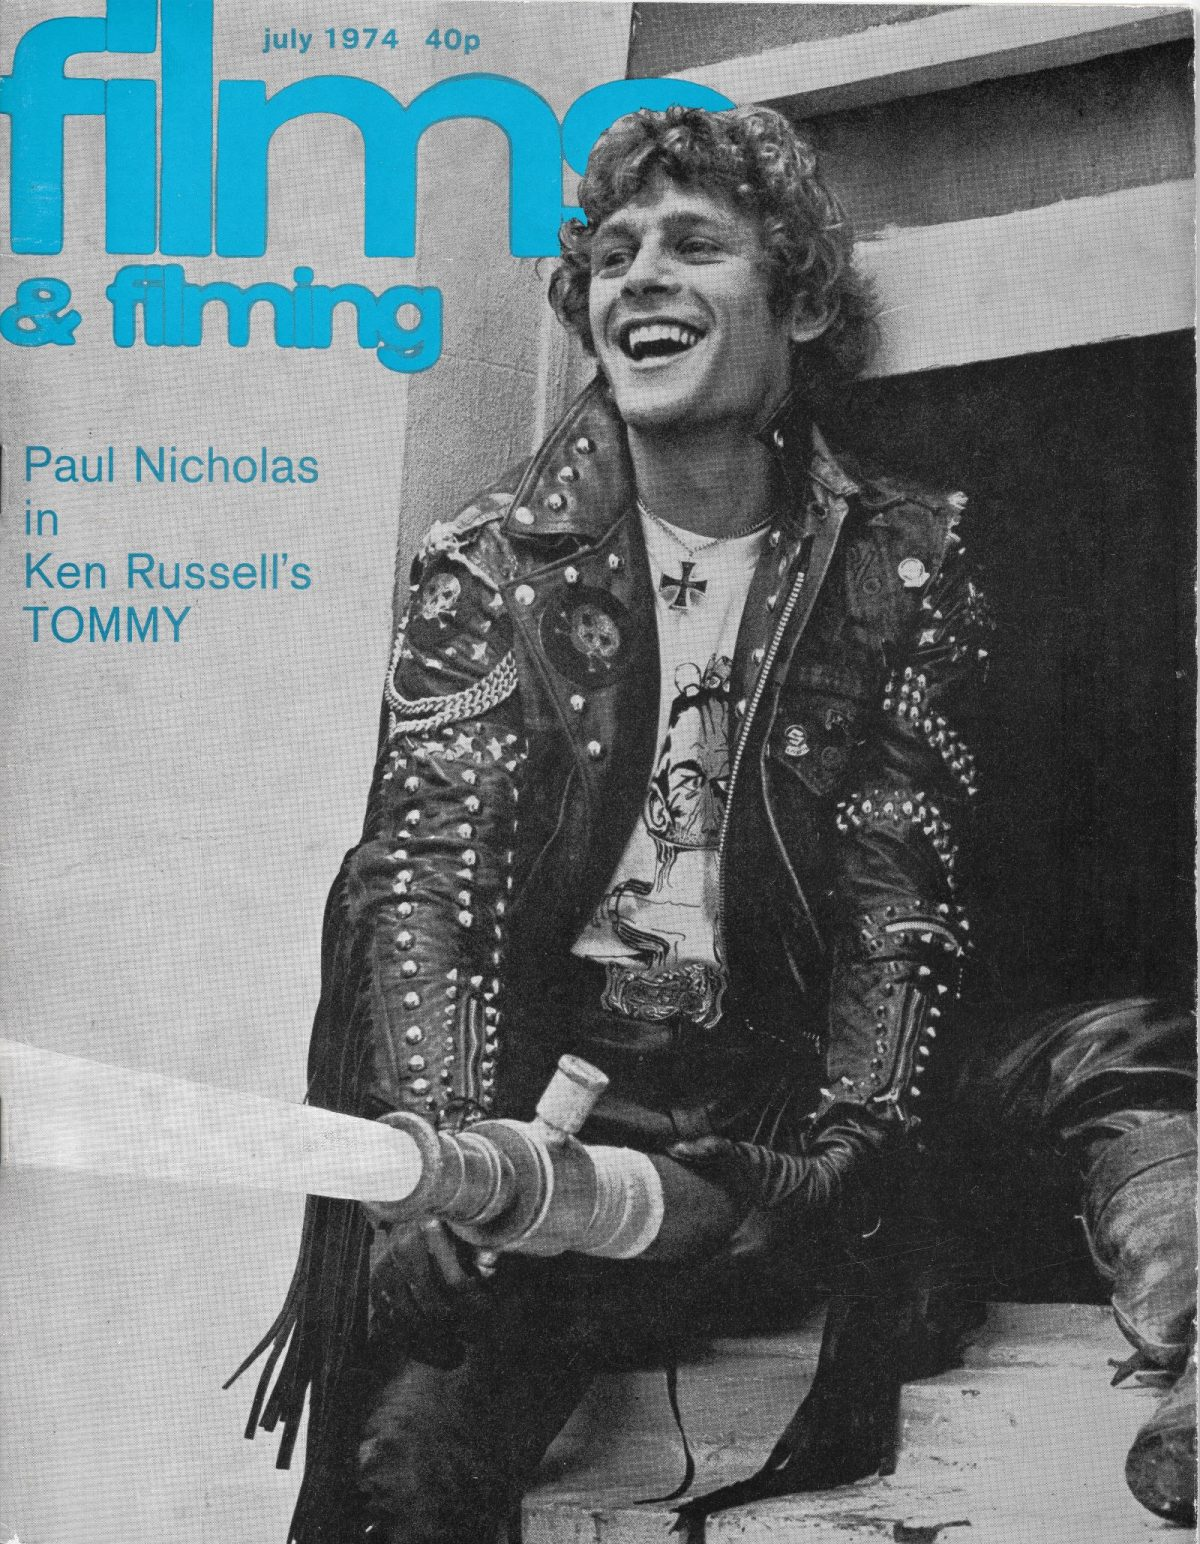 Films & Filming, film, magazines, Ken Russell, Tommy, Paul Nicholas, 1970s